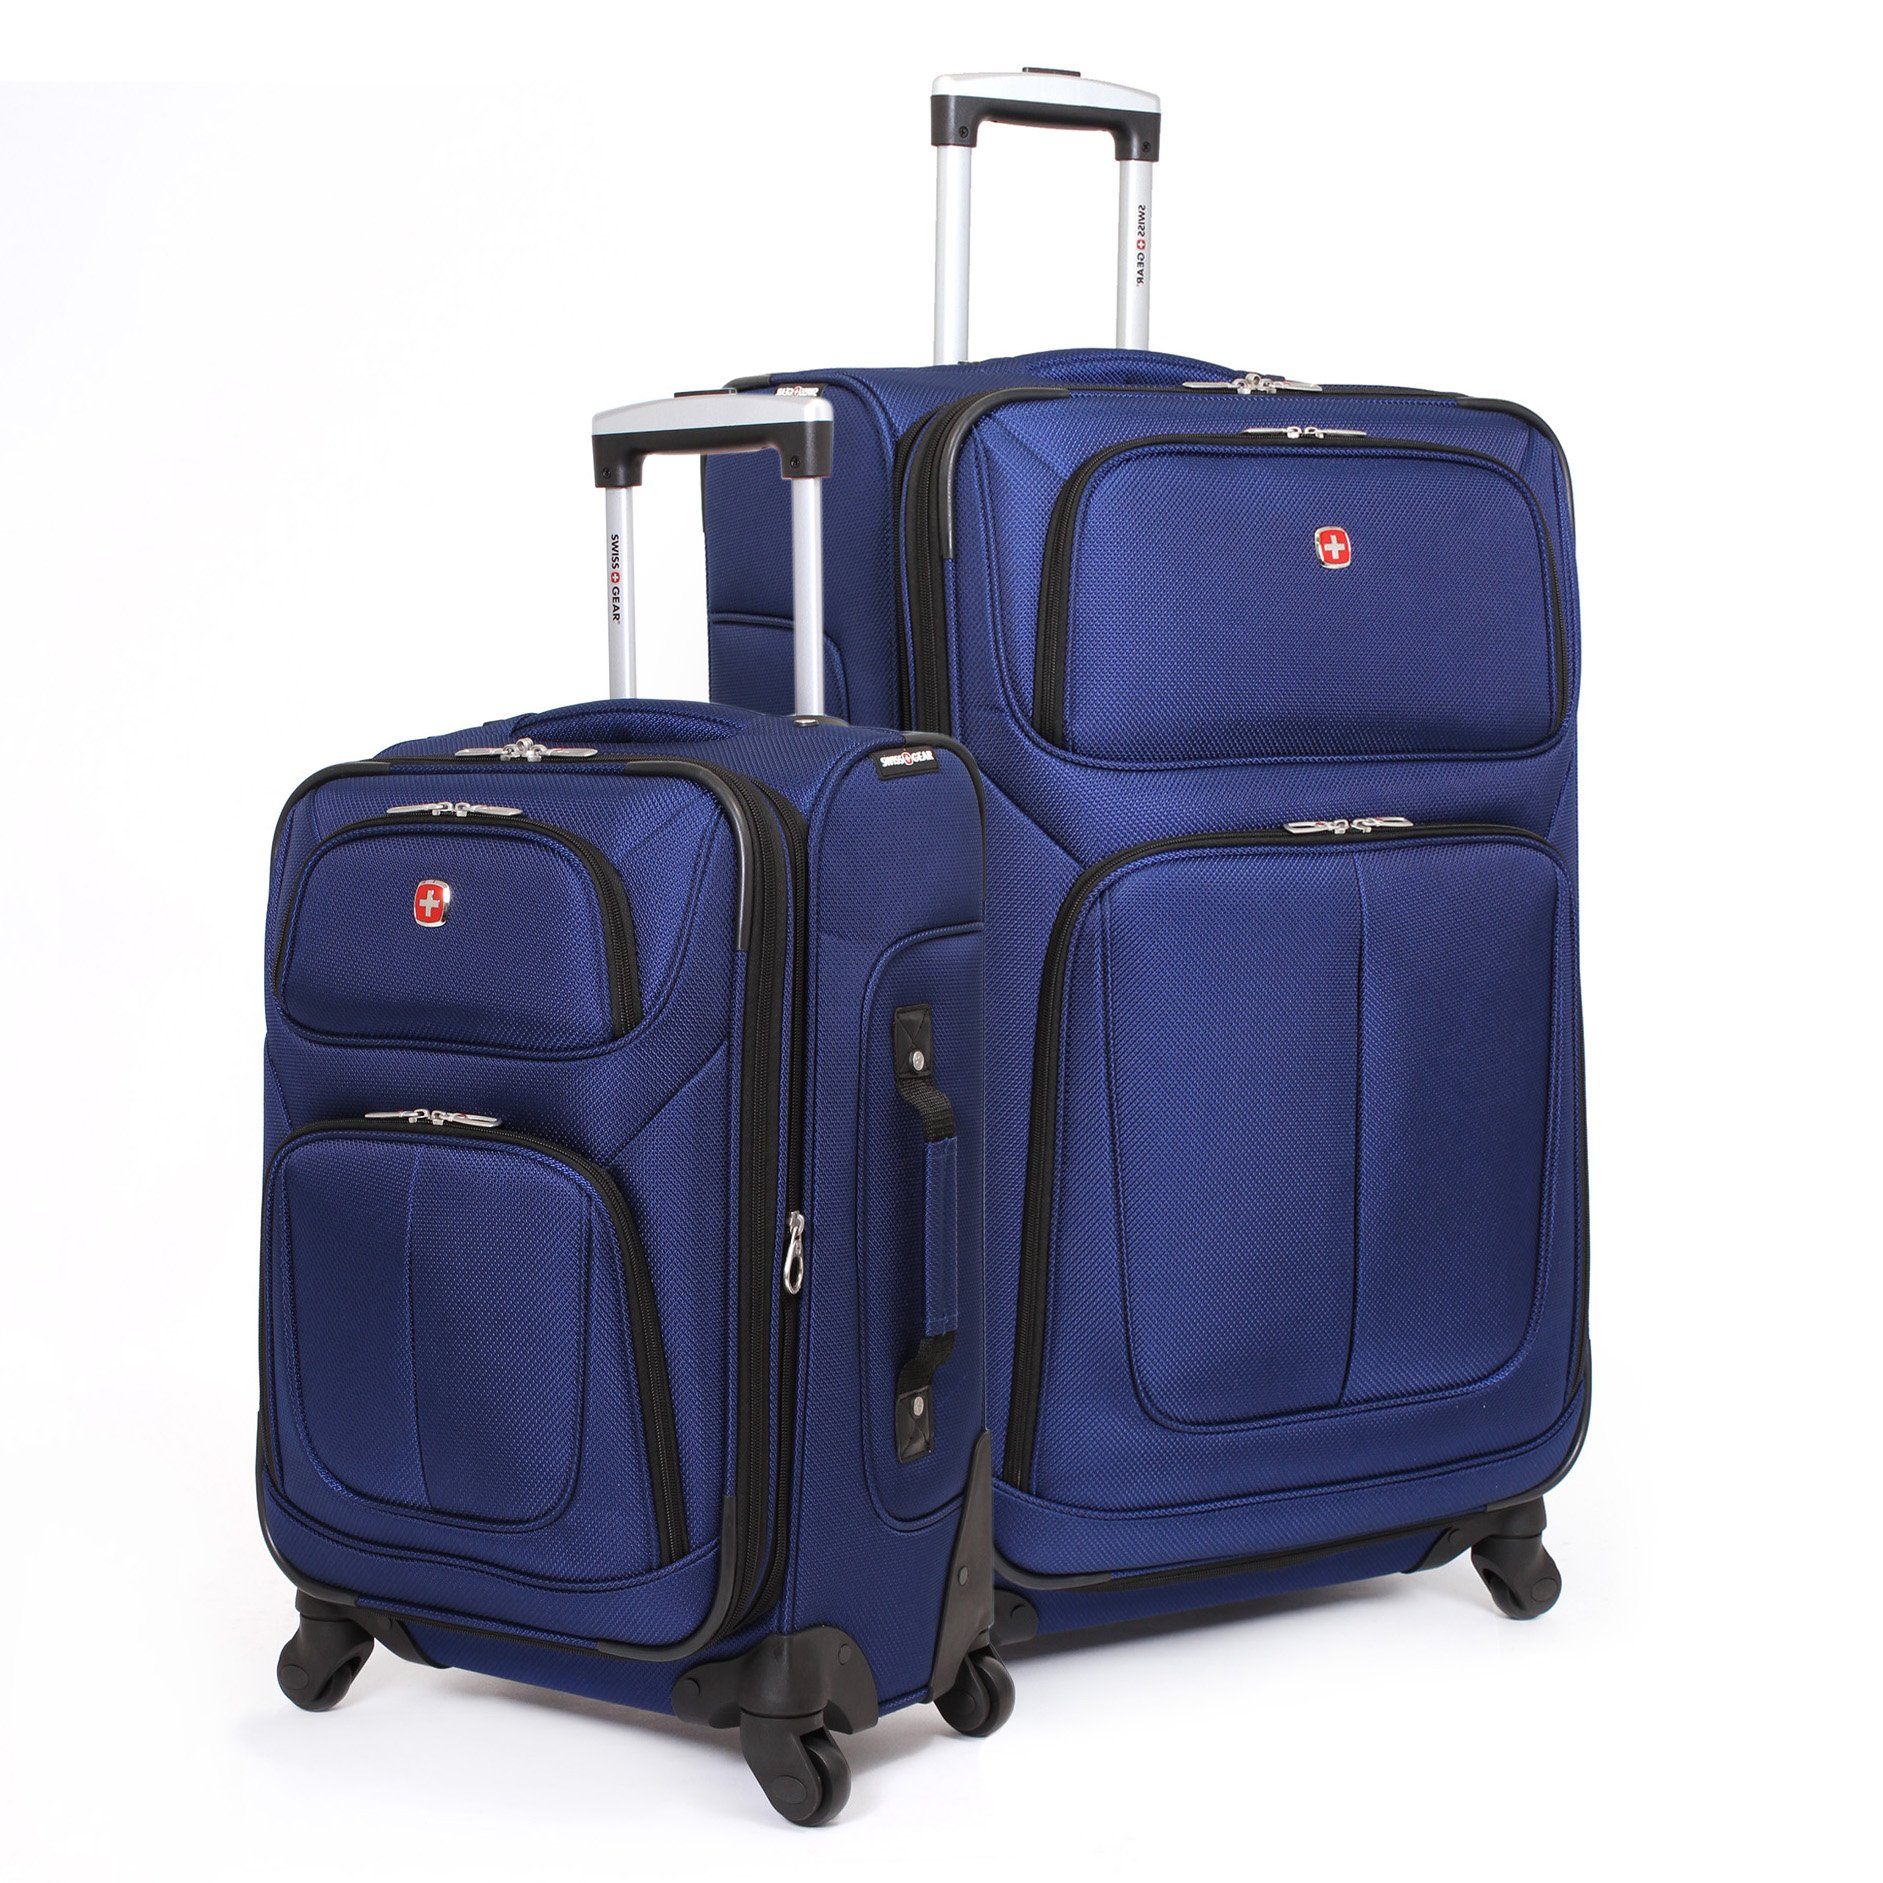 SwissGear 2 PC Spinner Wheel Black Suitcase Set - Softshell & Lightweight (Blue)